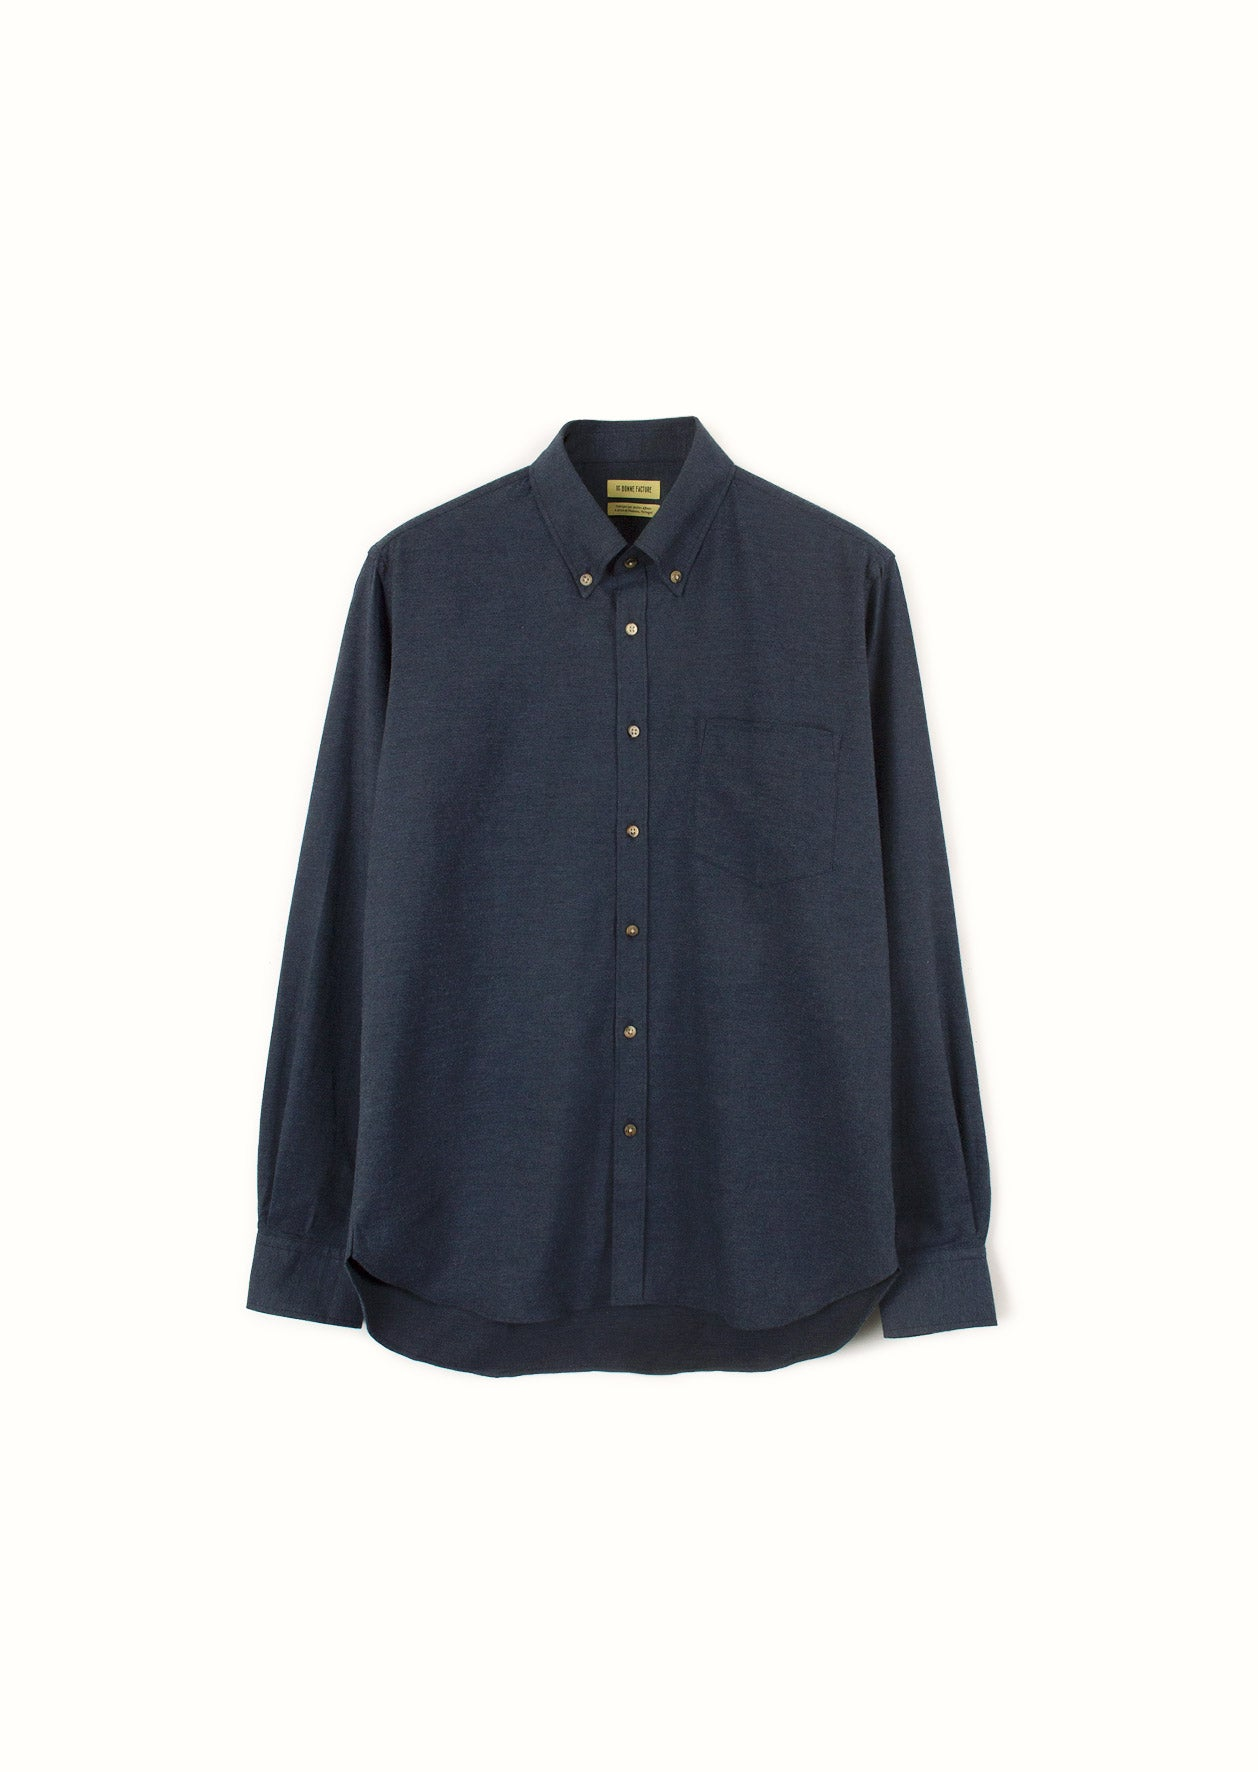 De Bonne Facture - Buttondown shirt - Cotton wool flannel - Navy